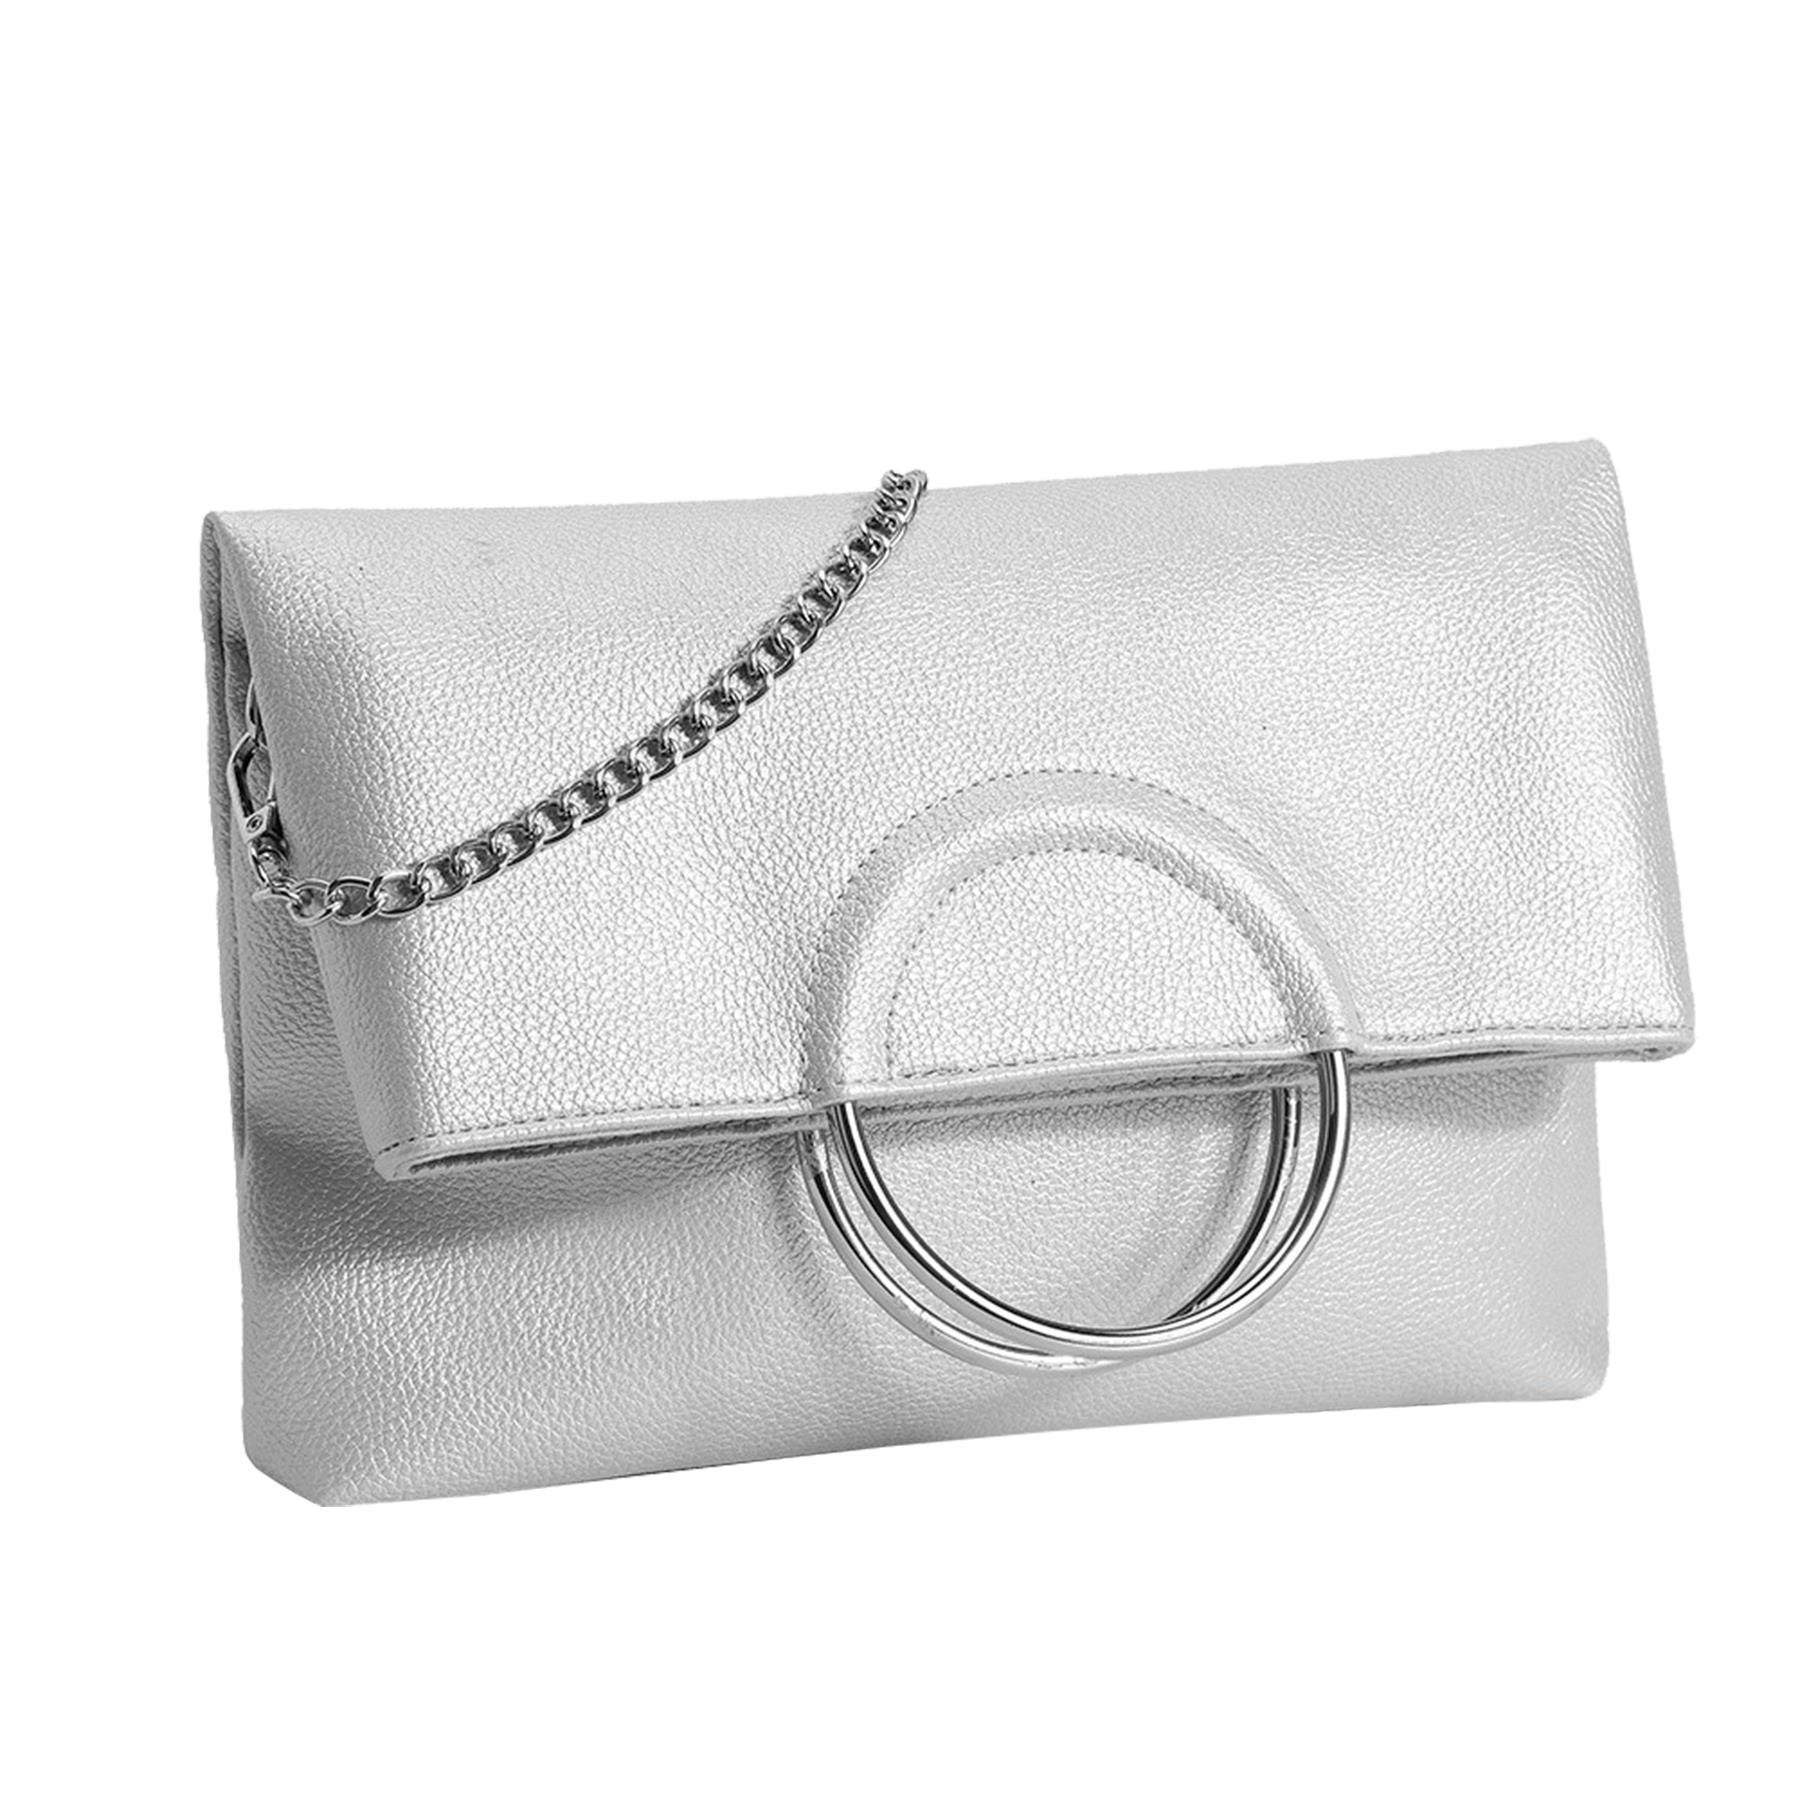 New-Women-s-Metallic-Ring-Top-Handles-Faux-Leather-Evening-Clutch-Bag thumbnail 15